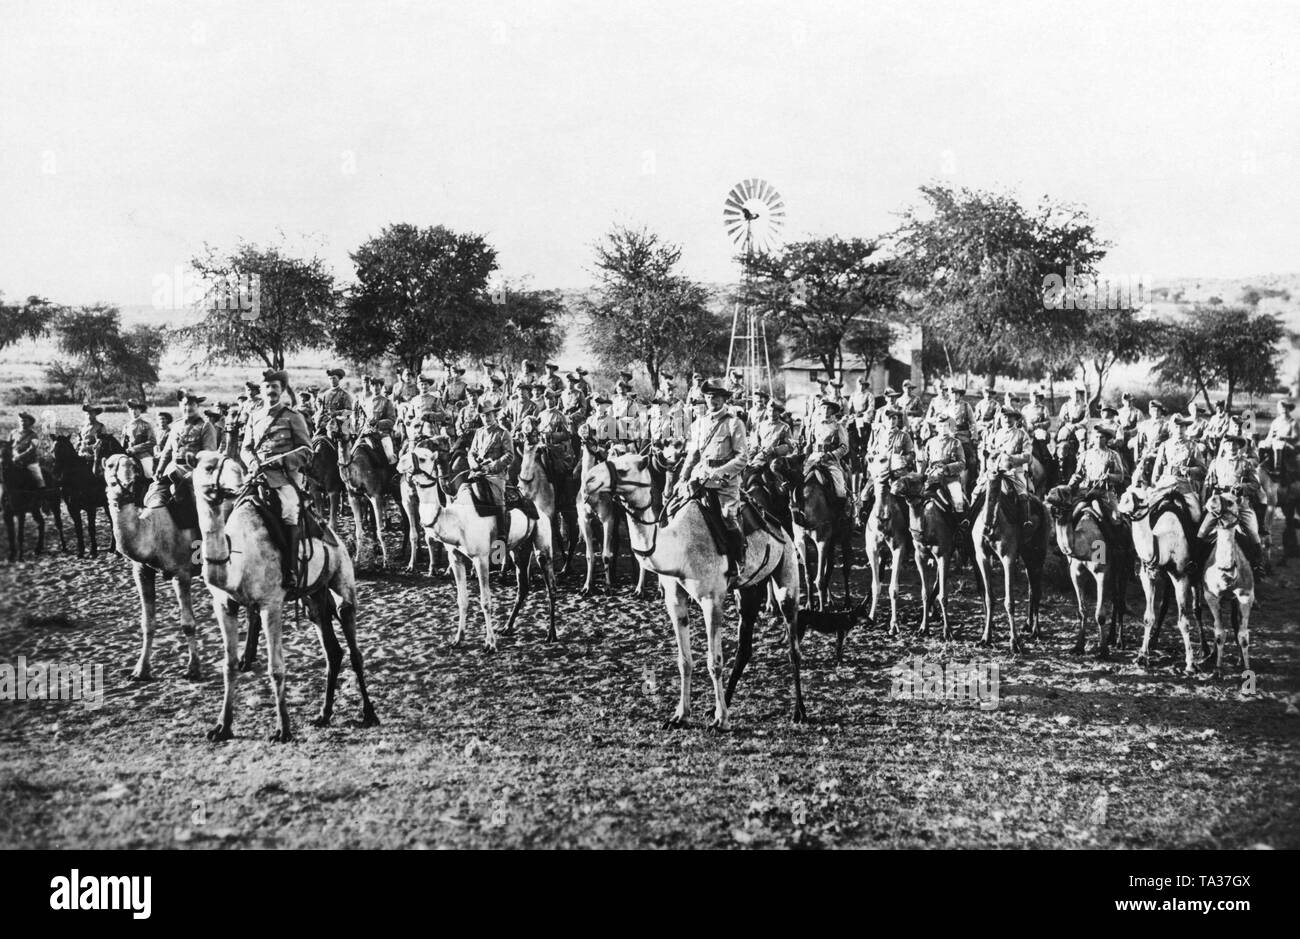 The Camel Corps of the German Schutztruppe in the former colony of German South West Africa celebrate the 25th anniversary of the Battle of the Waterberg. That was the decisive battle in the rebellion of the Herero and Nama (Hottentots), which led to the victory of the German colonialists over the natives. - Stock Image